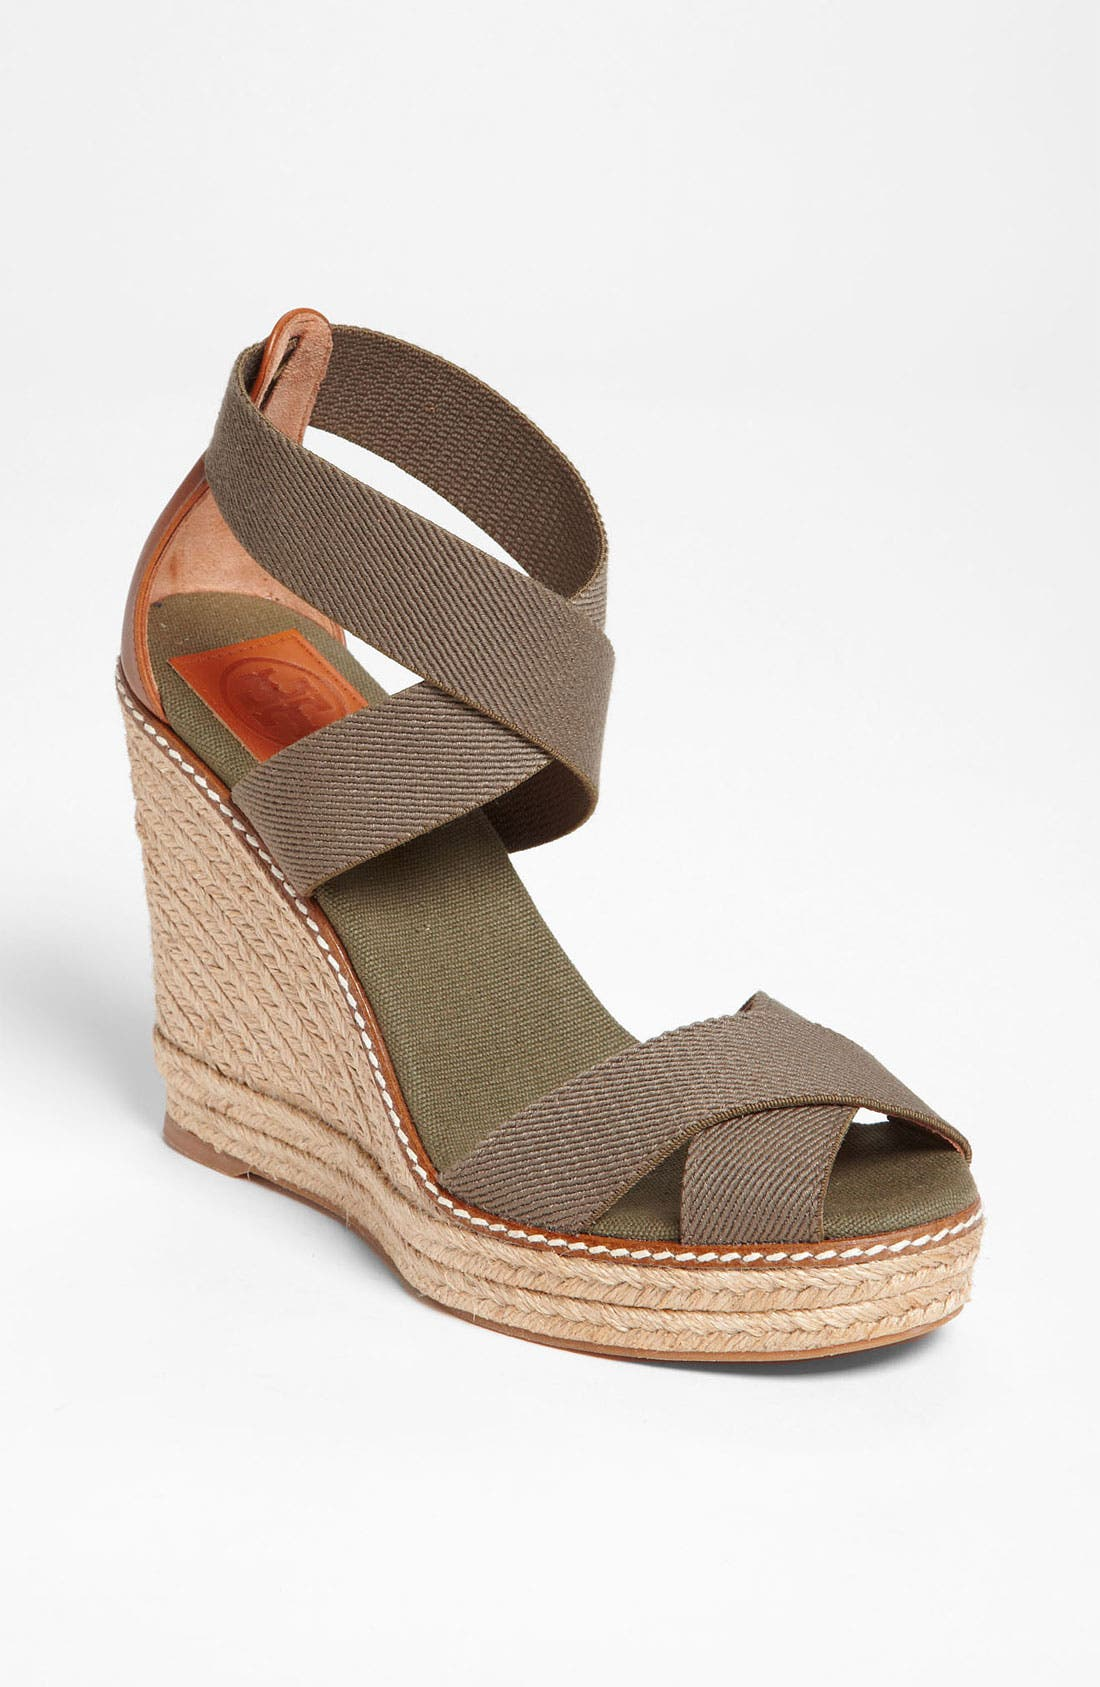 Alternate Image 1 Selected - Tory Burch 'Adonis' Wedge Espadrille